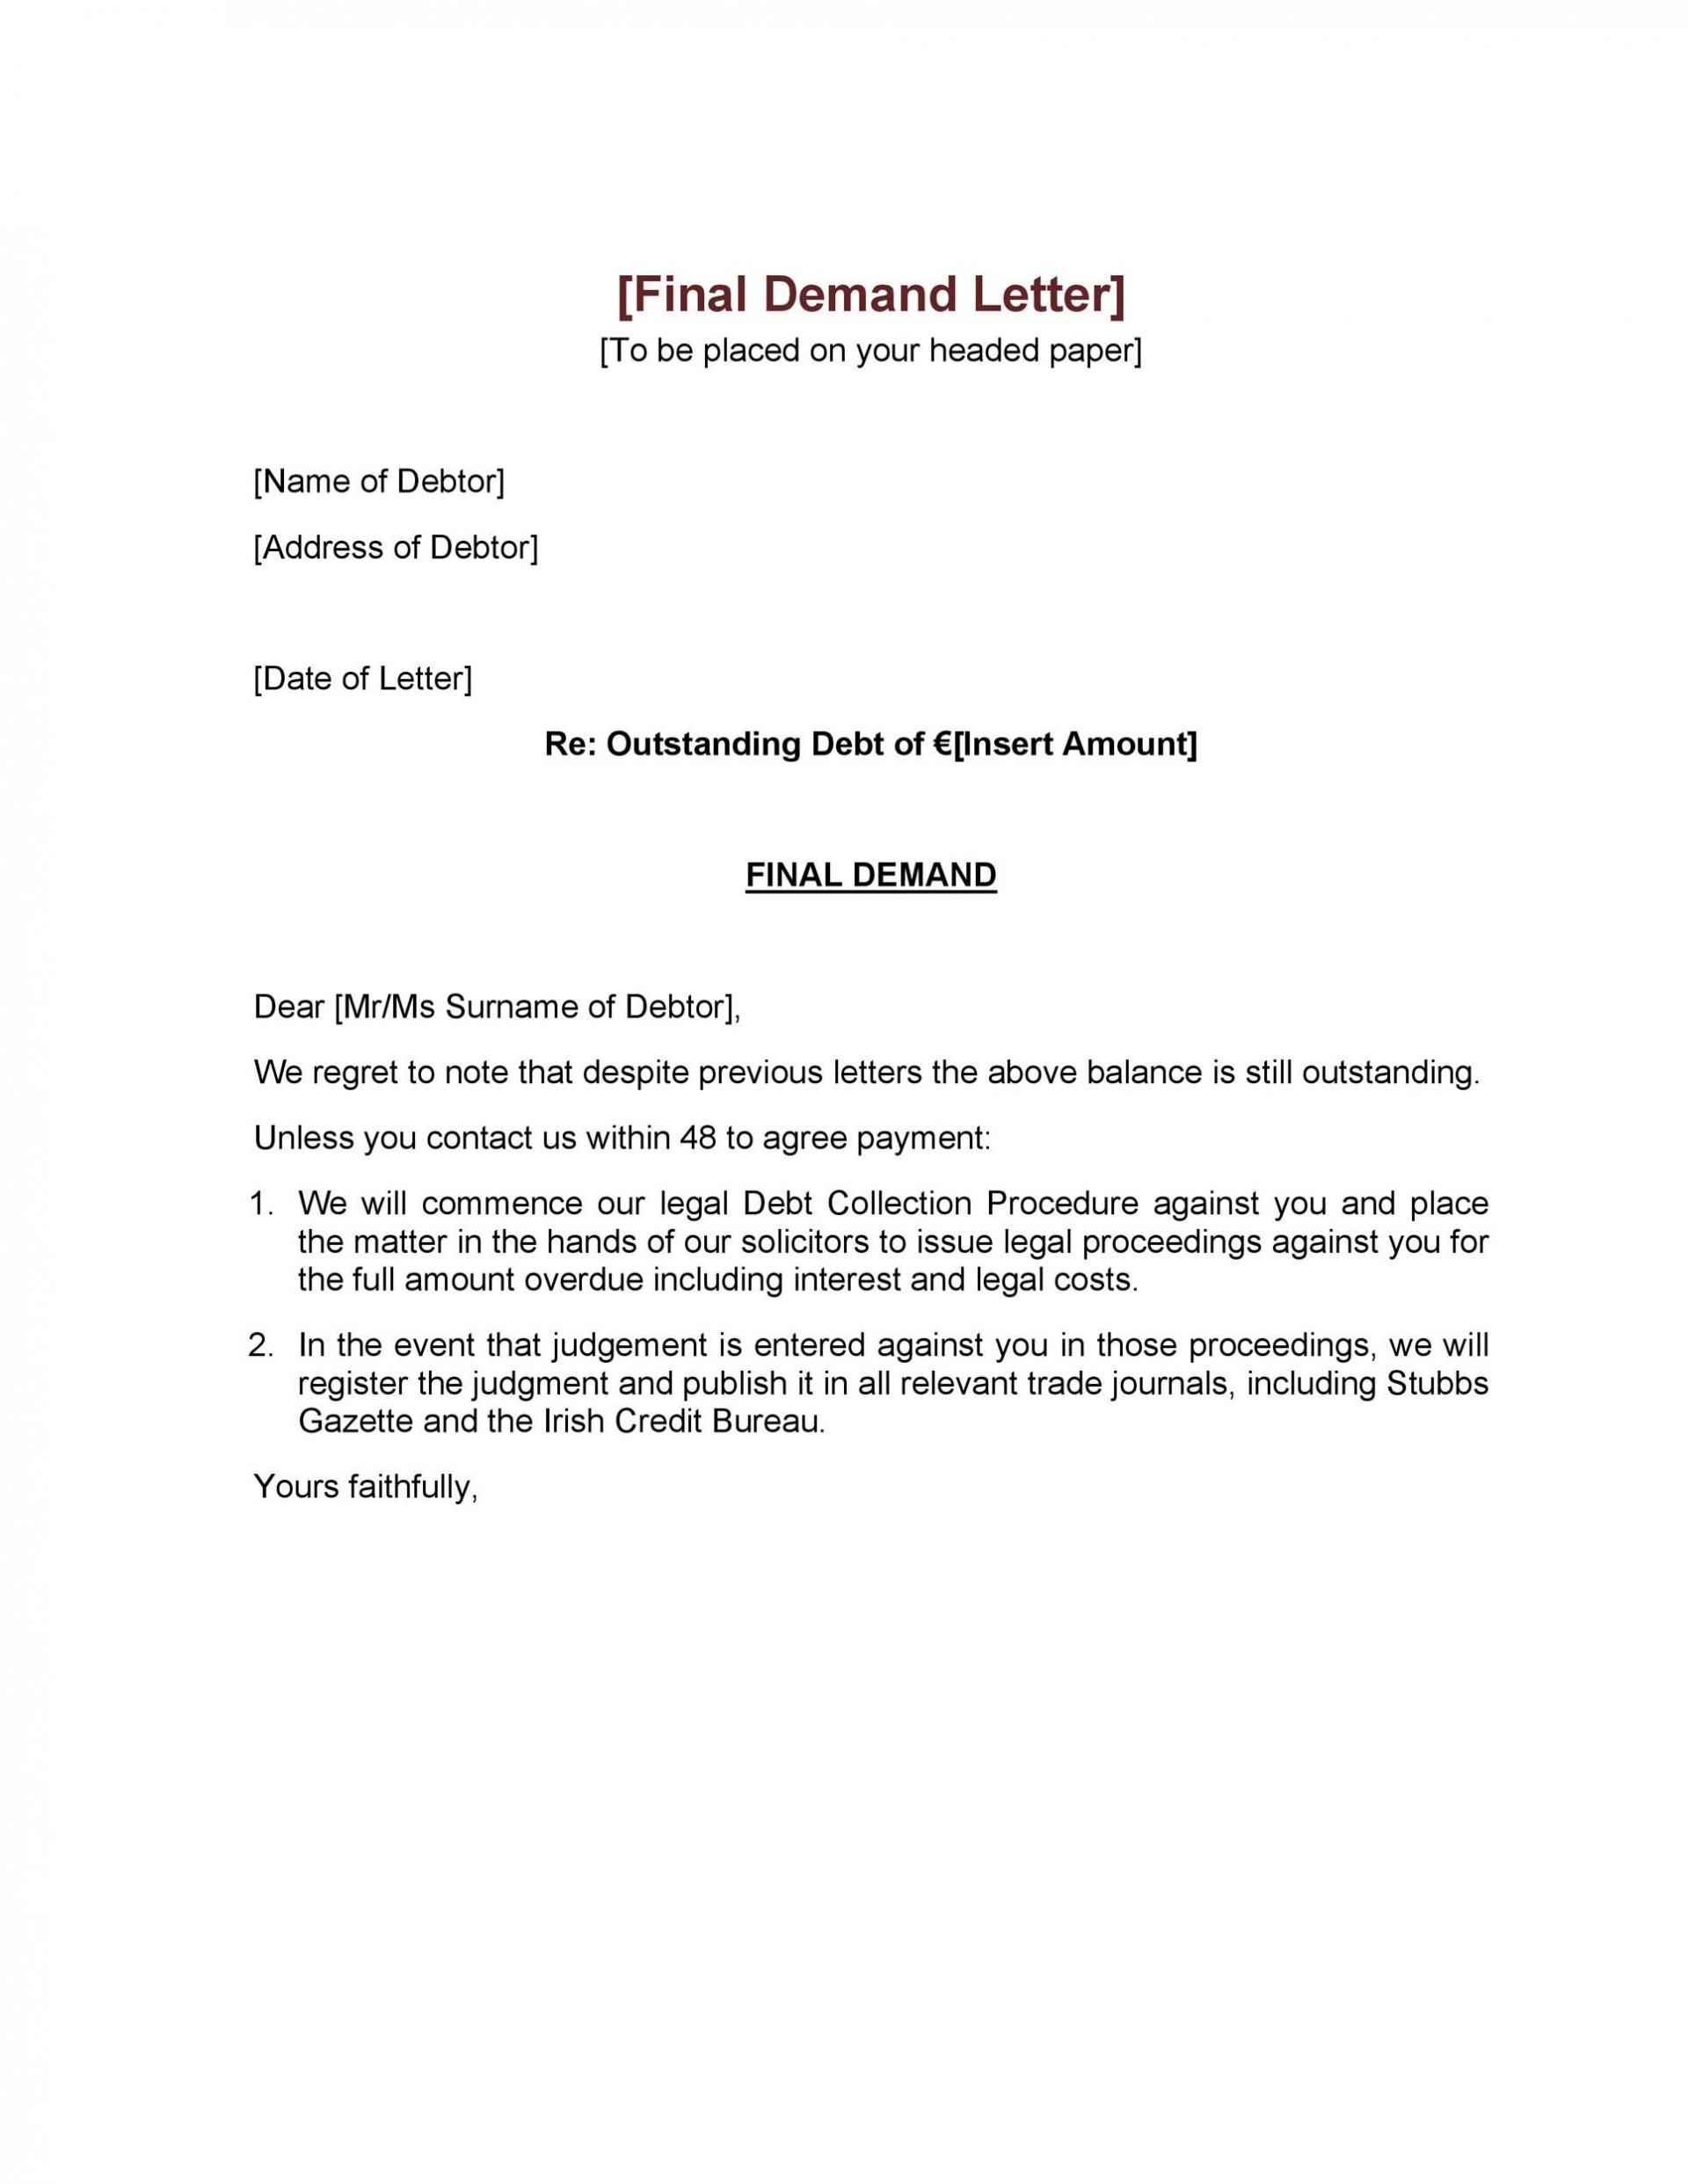 006 Beautiful Payment Demand Letter Template Free Highest Quality  Final For1920